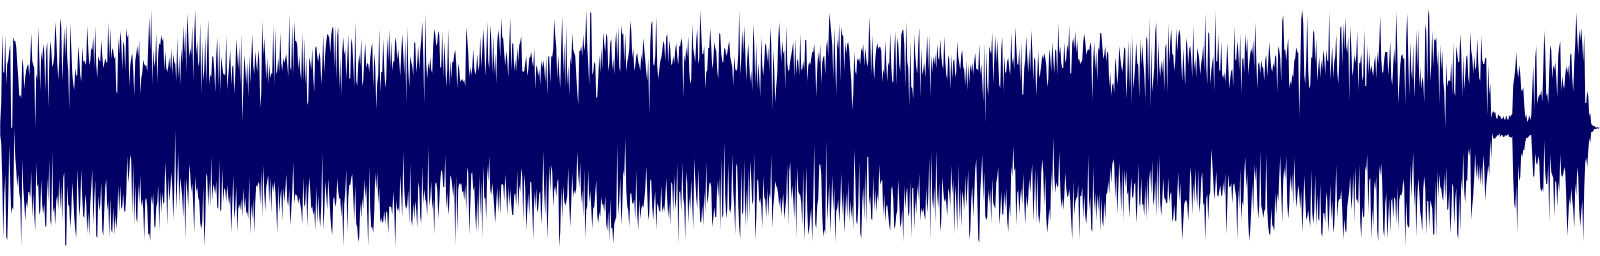 waveform of track #143672